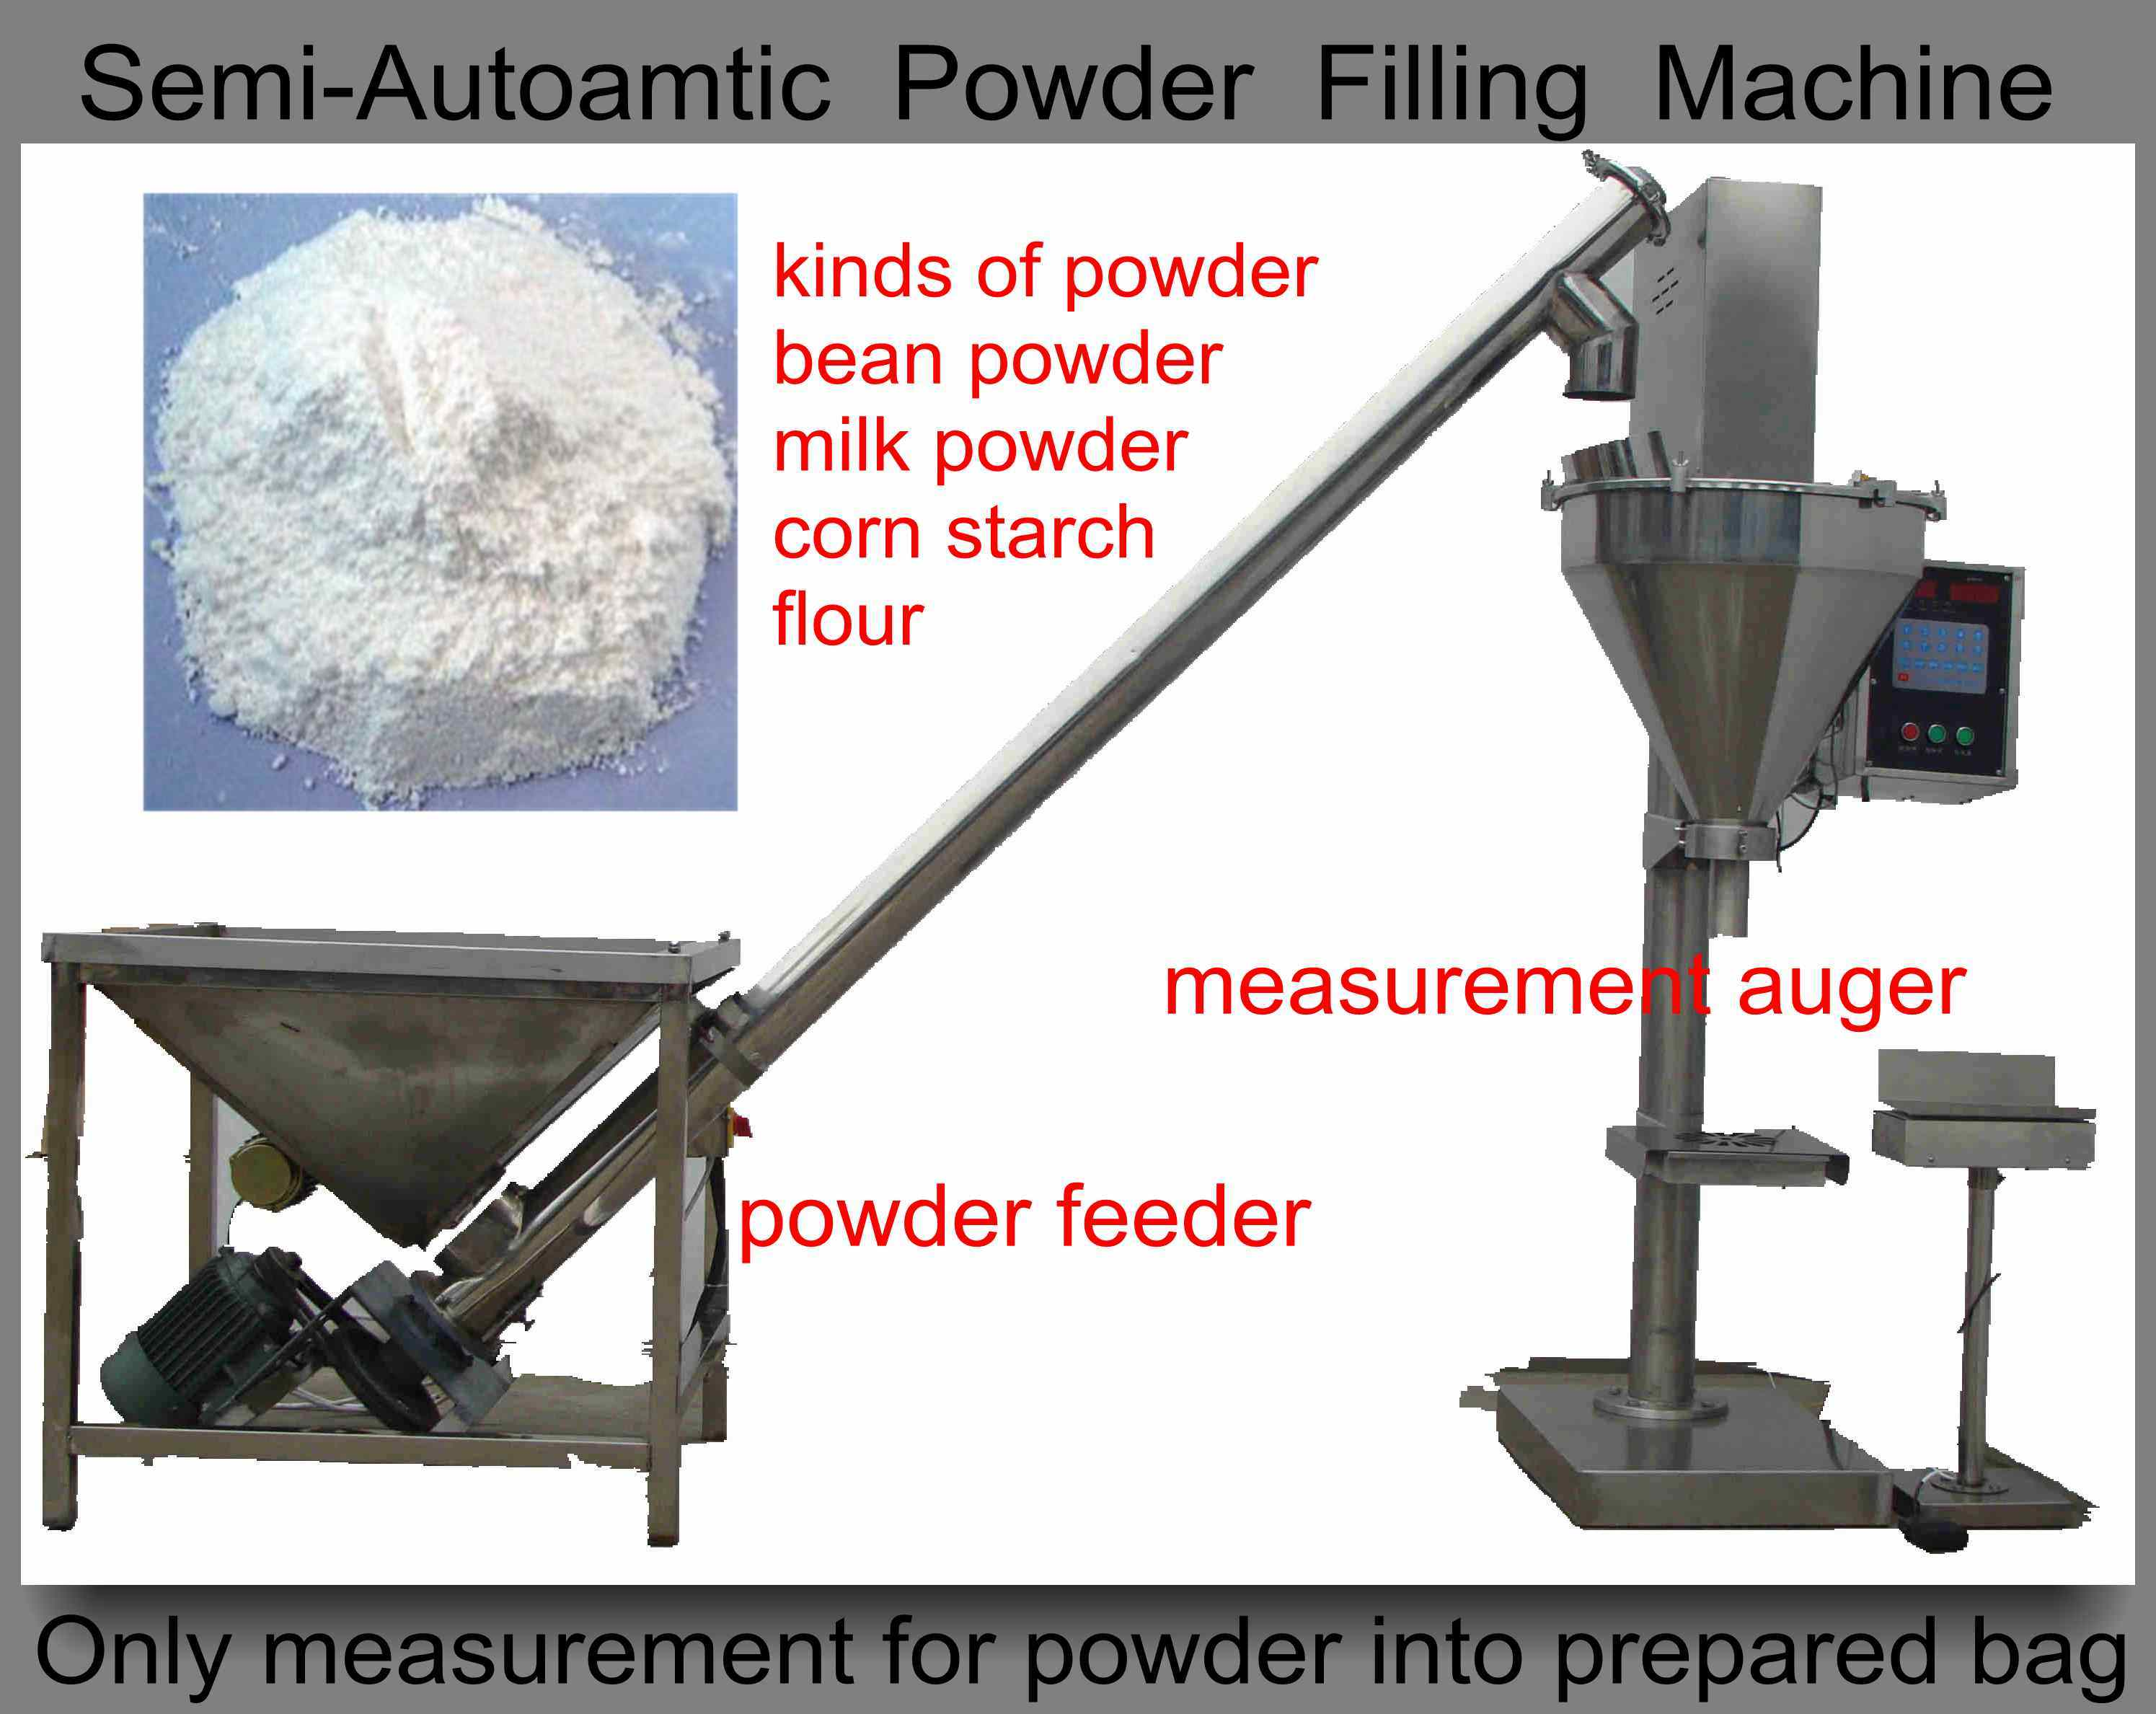 feed cw feeder earth product clockwise rpm amp harman gearbox motor assembly part energy auger systems sense motorgearbox